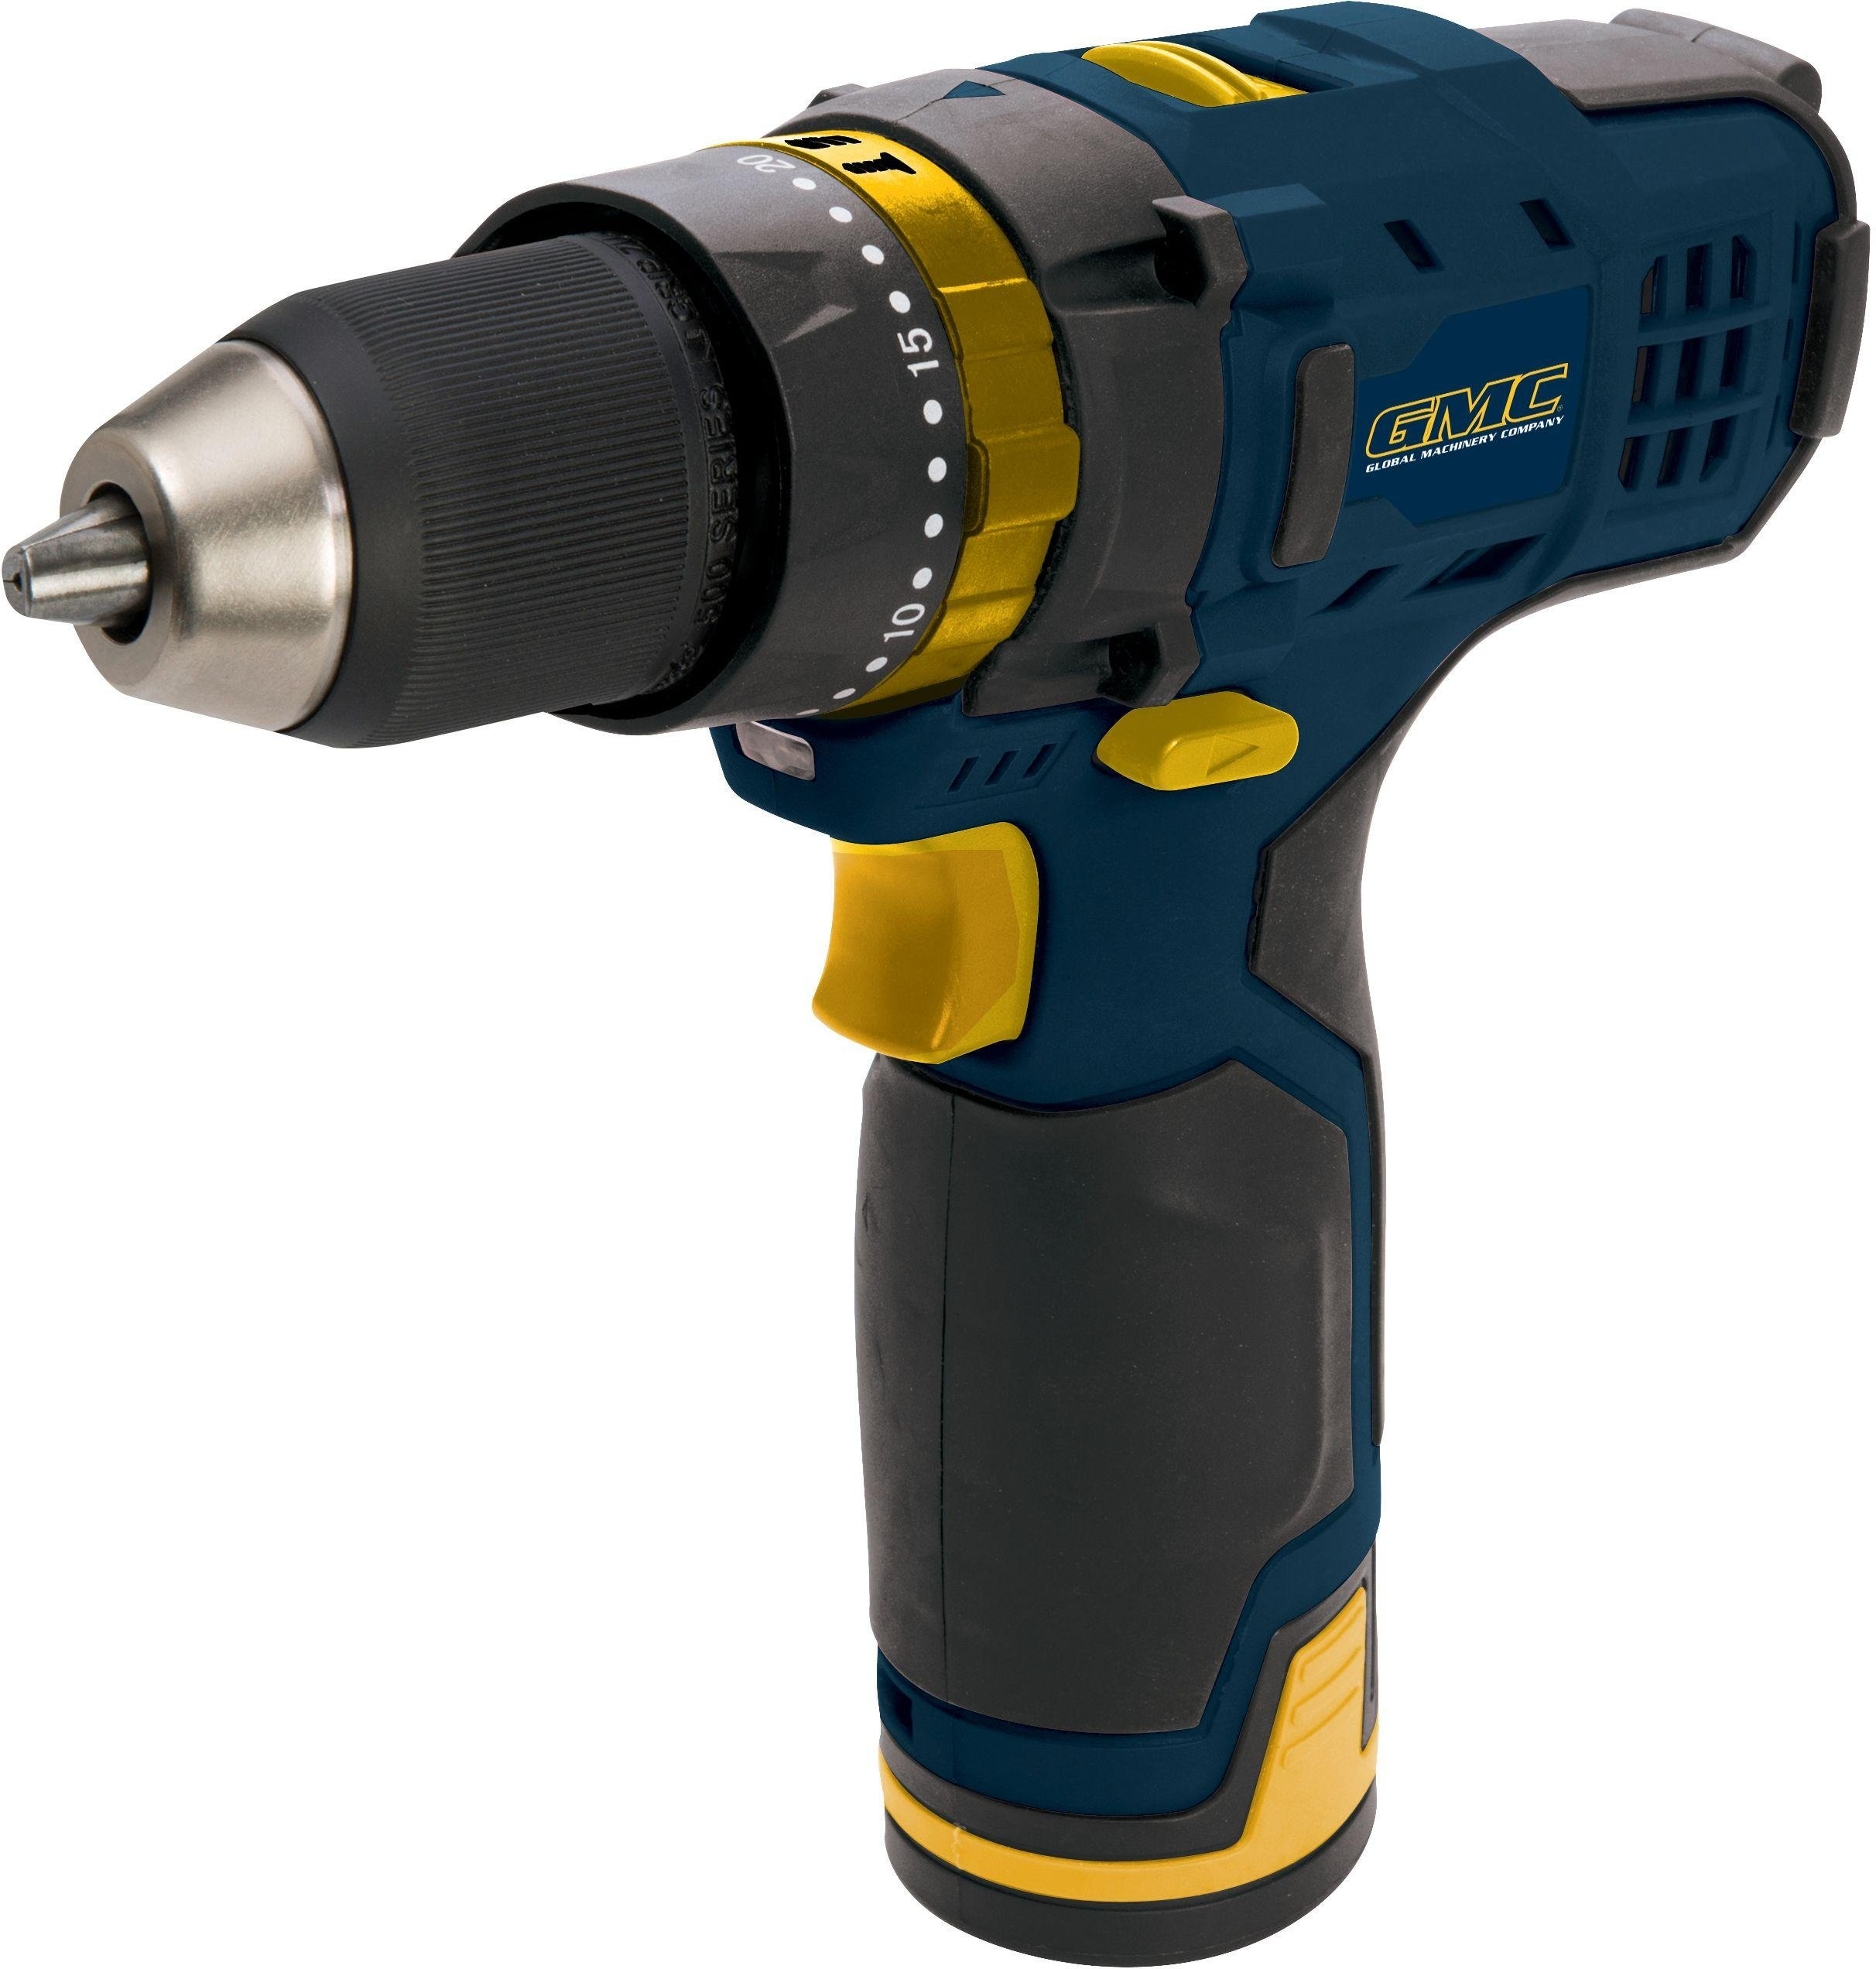 GMC - 12V Combi Hammer Drill lowest price